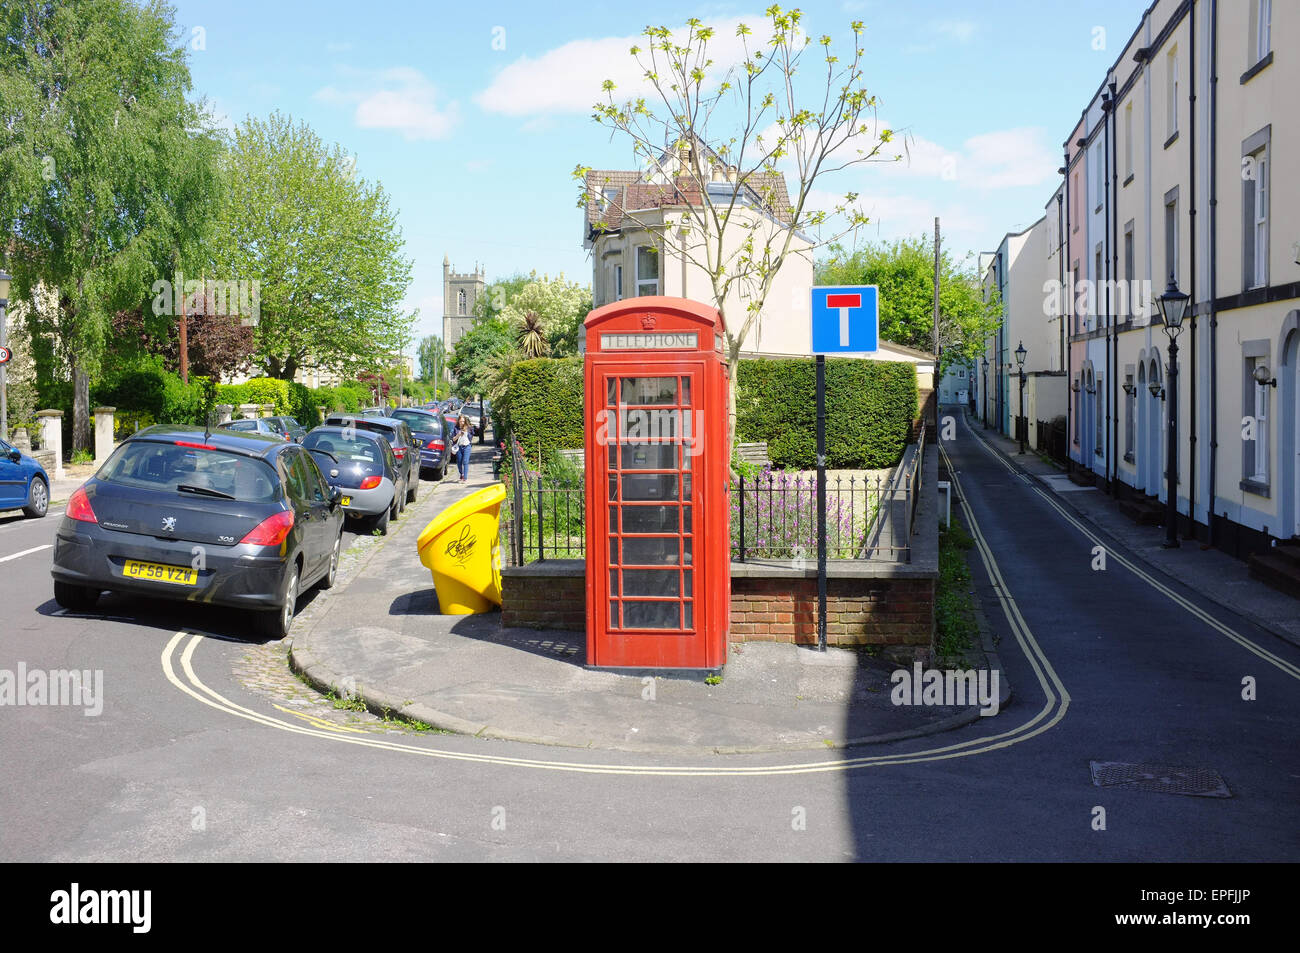 A British red public telephone box in the centre of a street in Bristol. - Stock Image